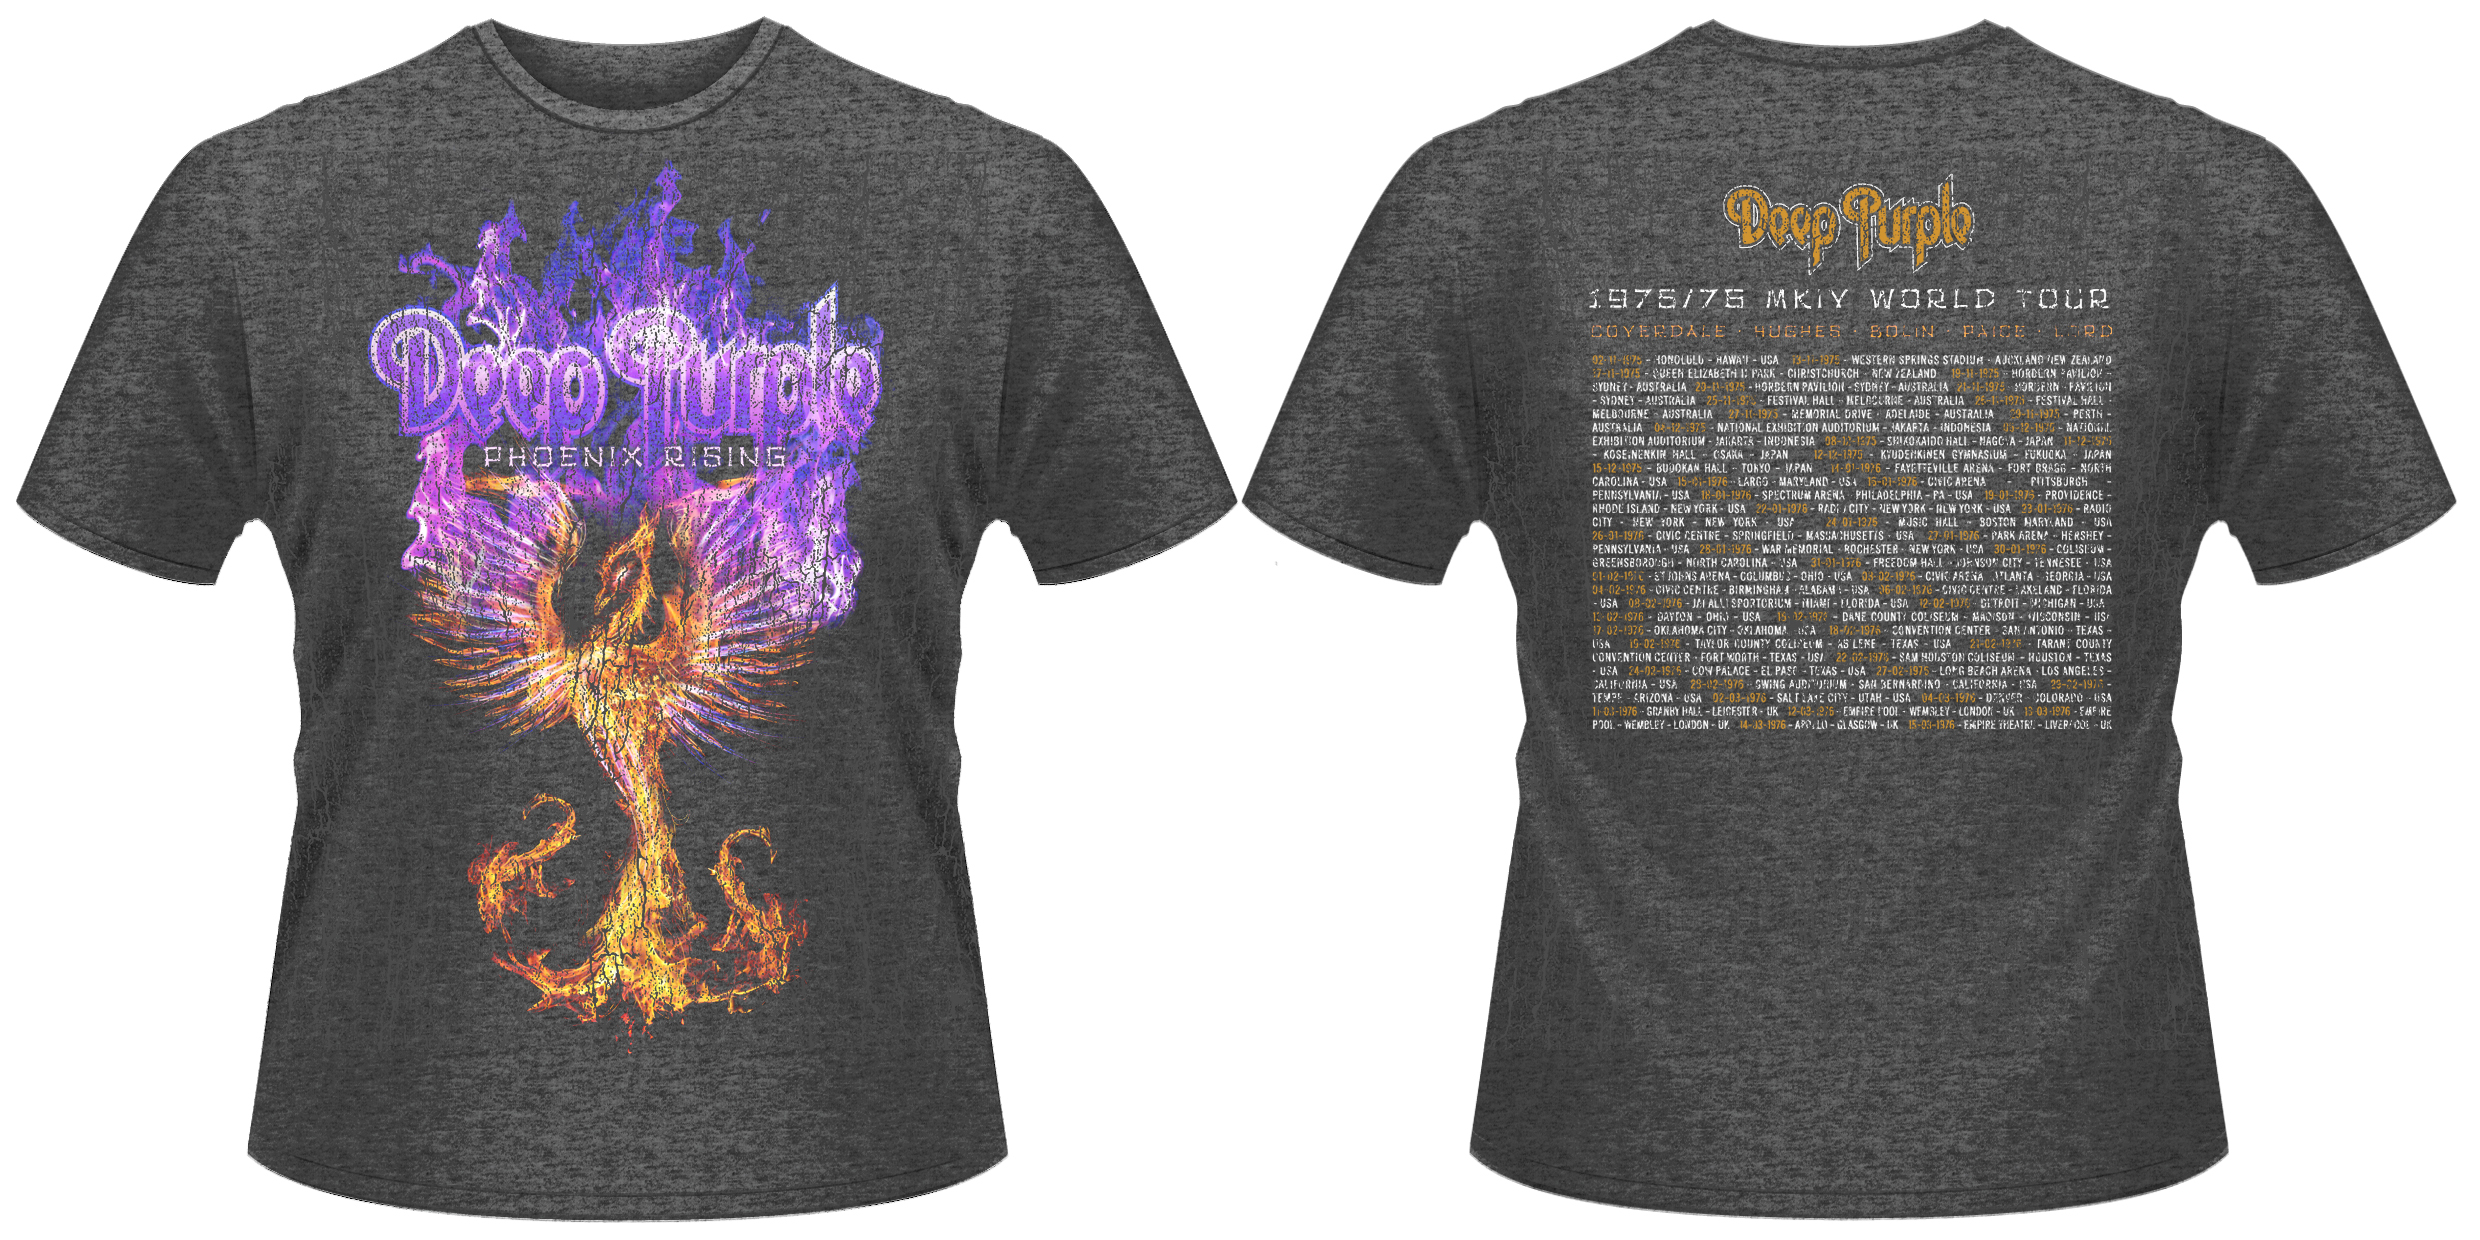 Deep Purple 'Phoenix Rising' T-Shirt